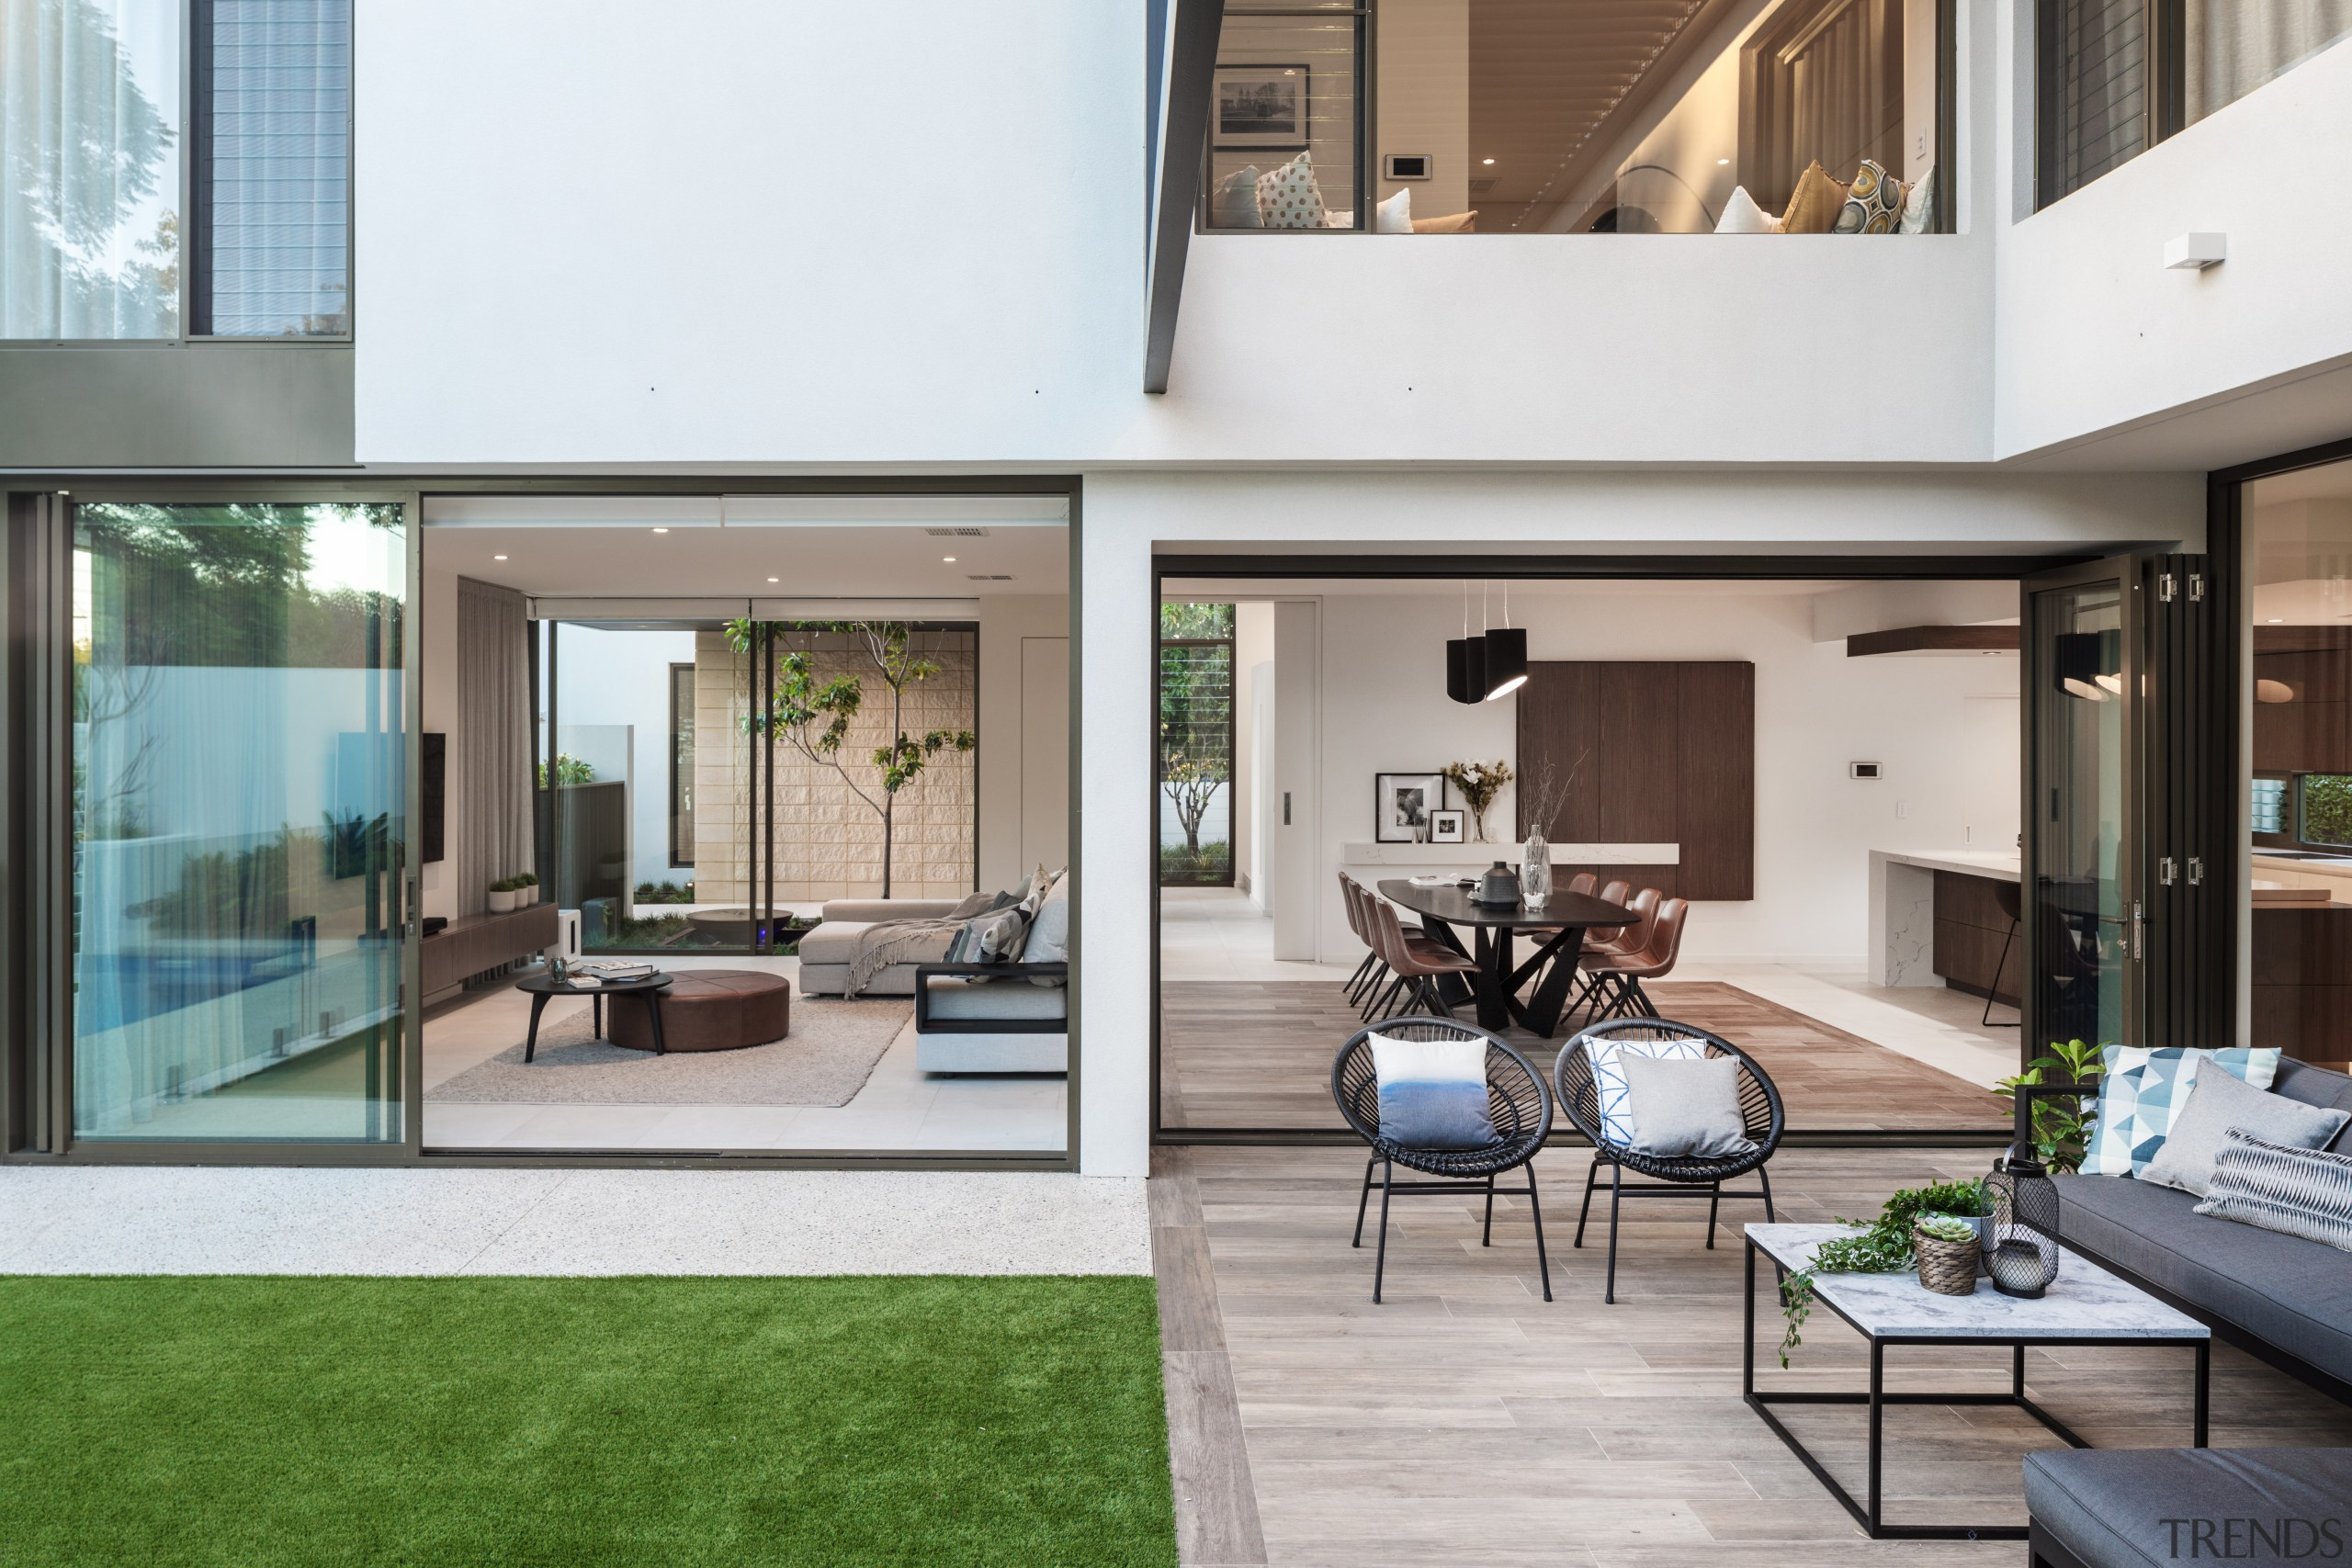 Open sesame – seen here from the back apartment, architecture, backyard, building, ceiling, condominium, design, estate, facade, floor, flooring, furniture, home, house, interior design, living room, property, real estate, residential area, room, table, window, gray